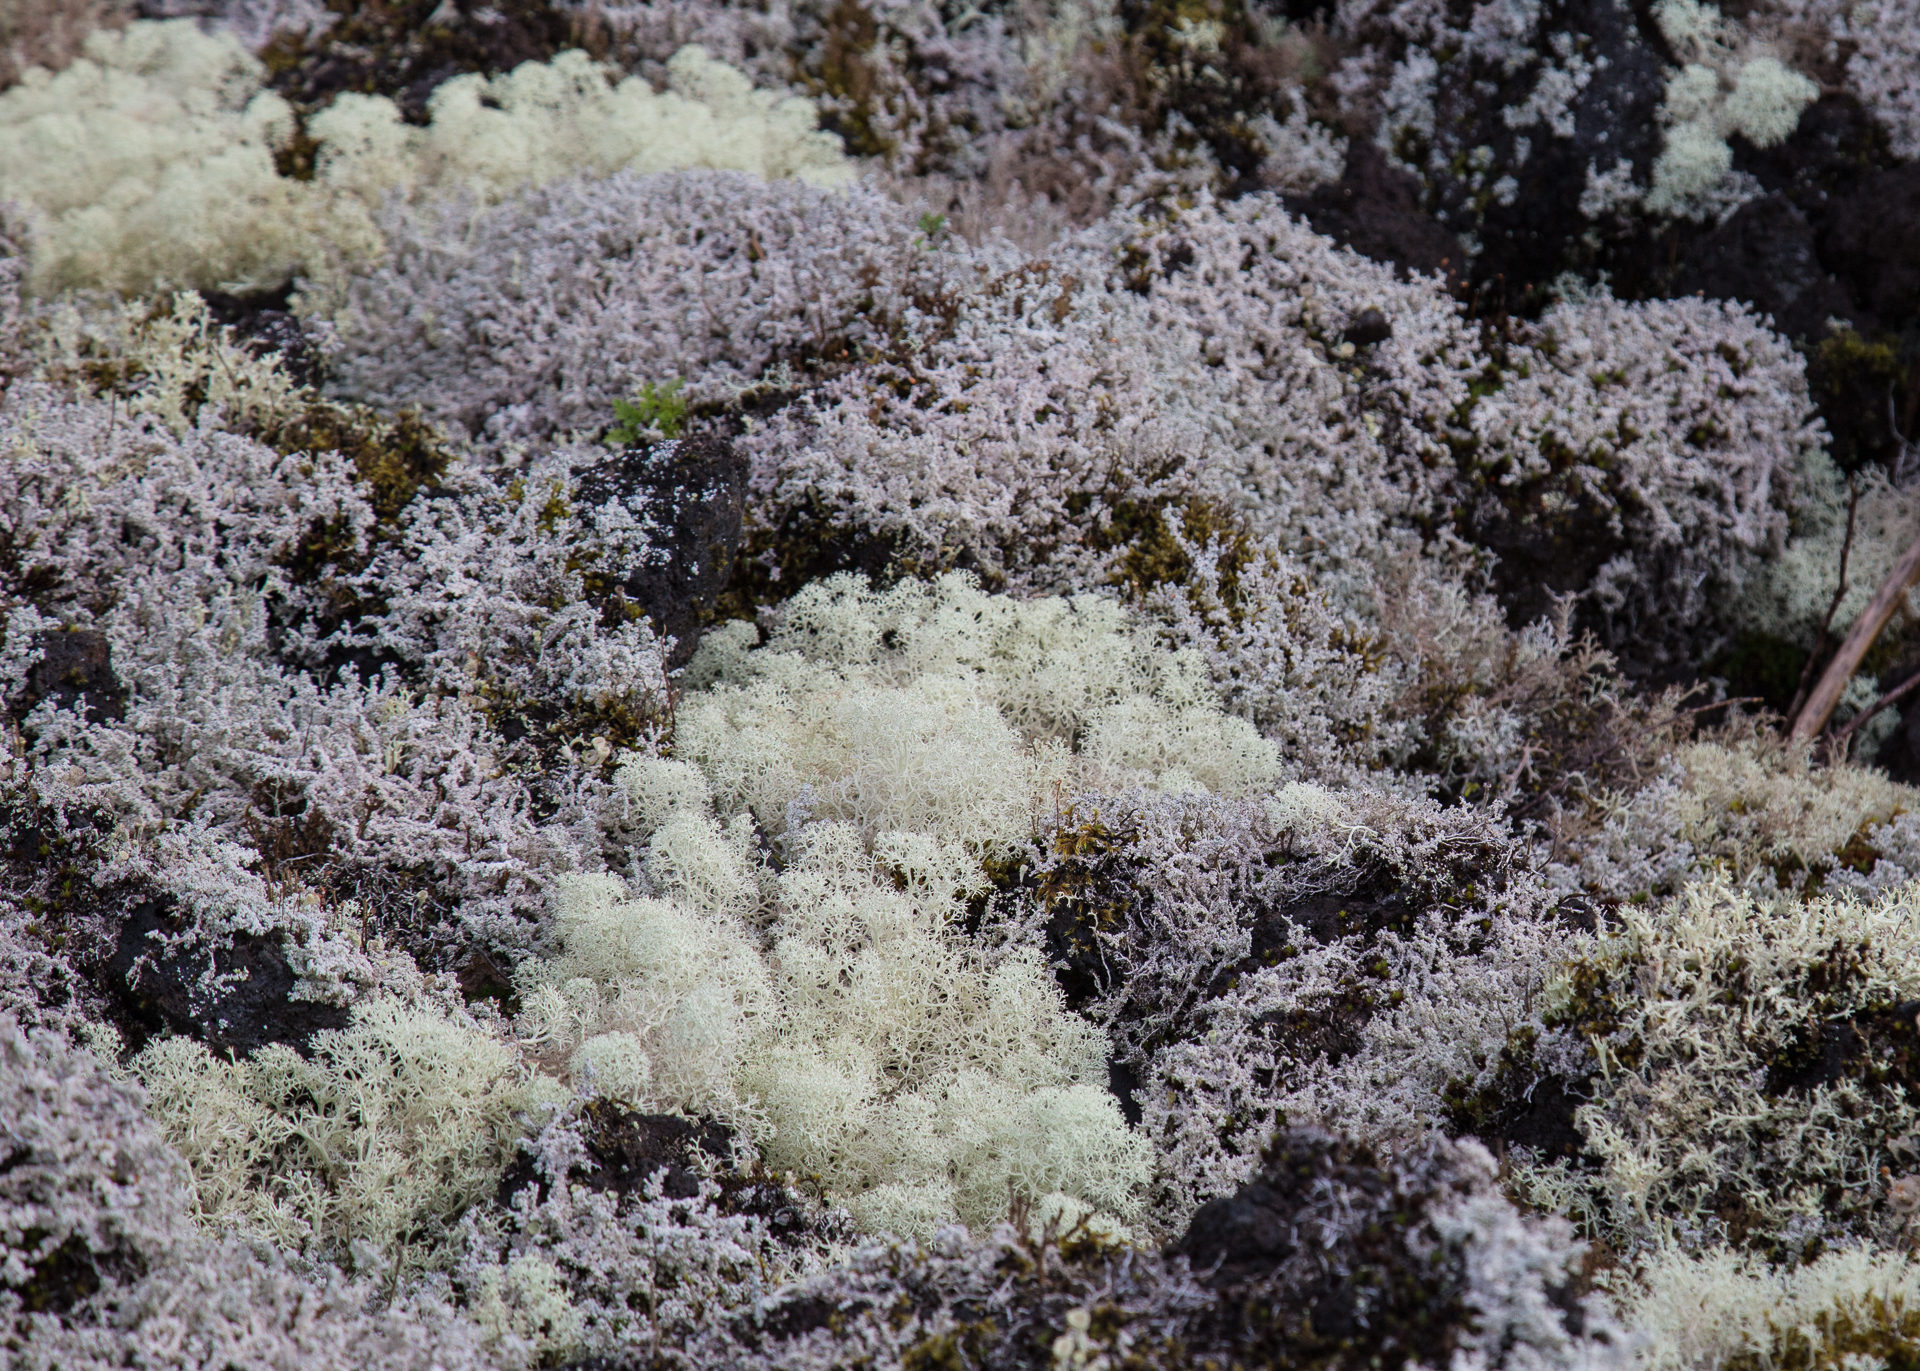 Lichen, growing on the lava near Vetter Falls.